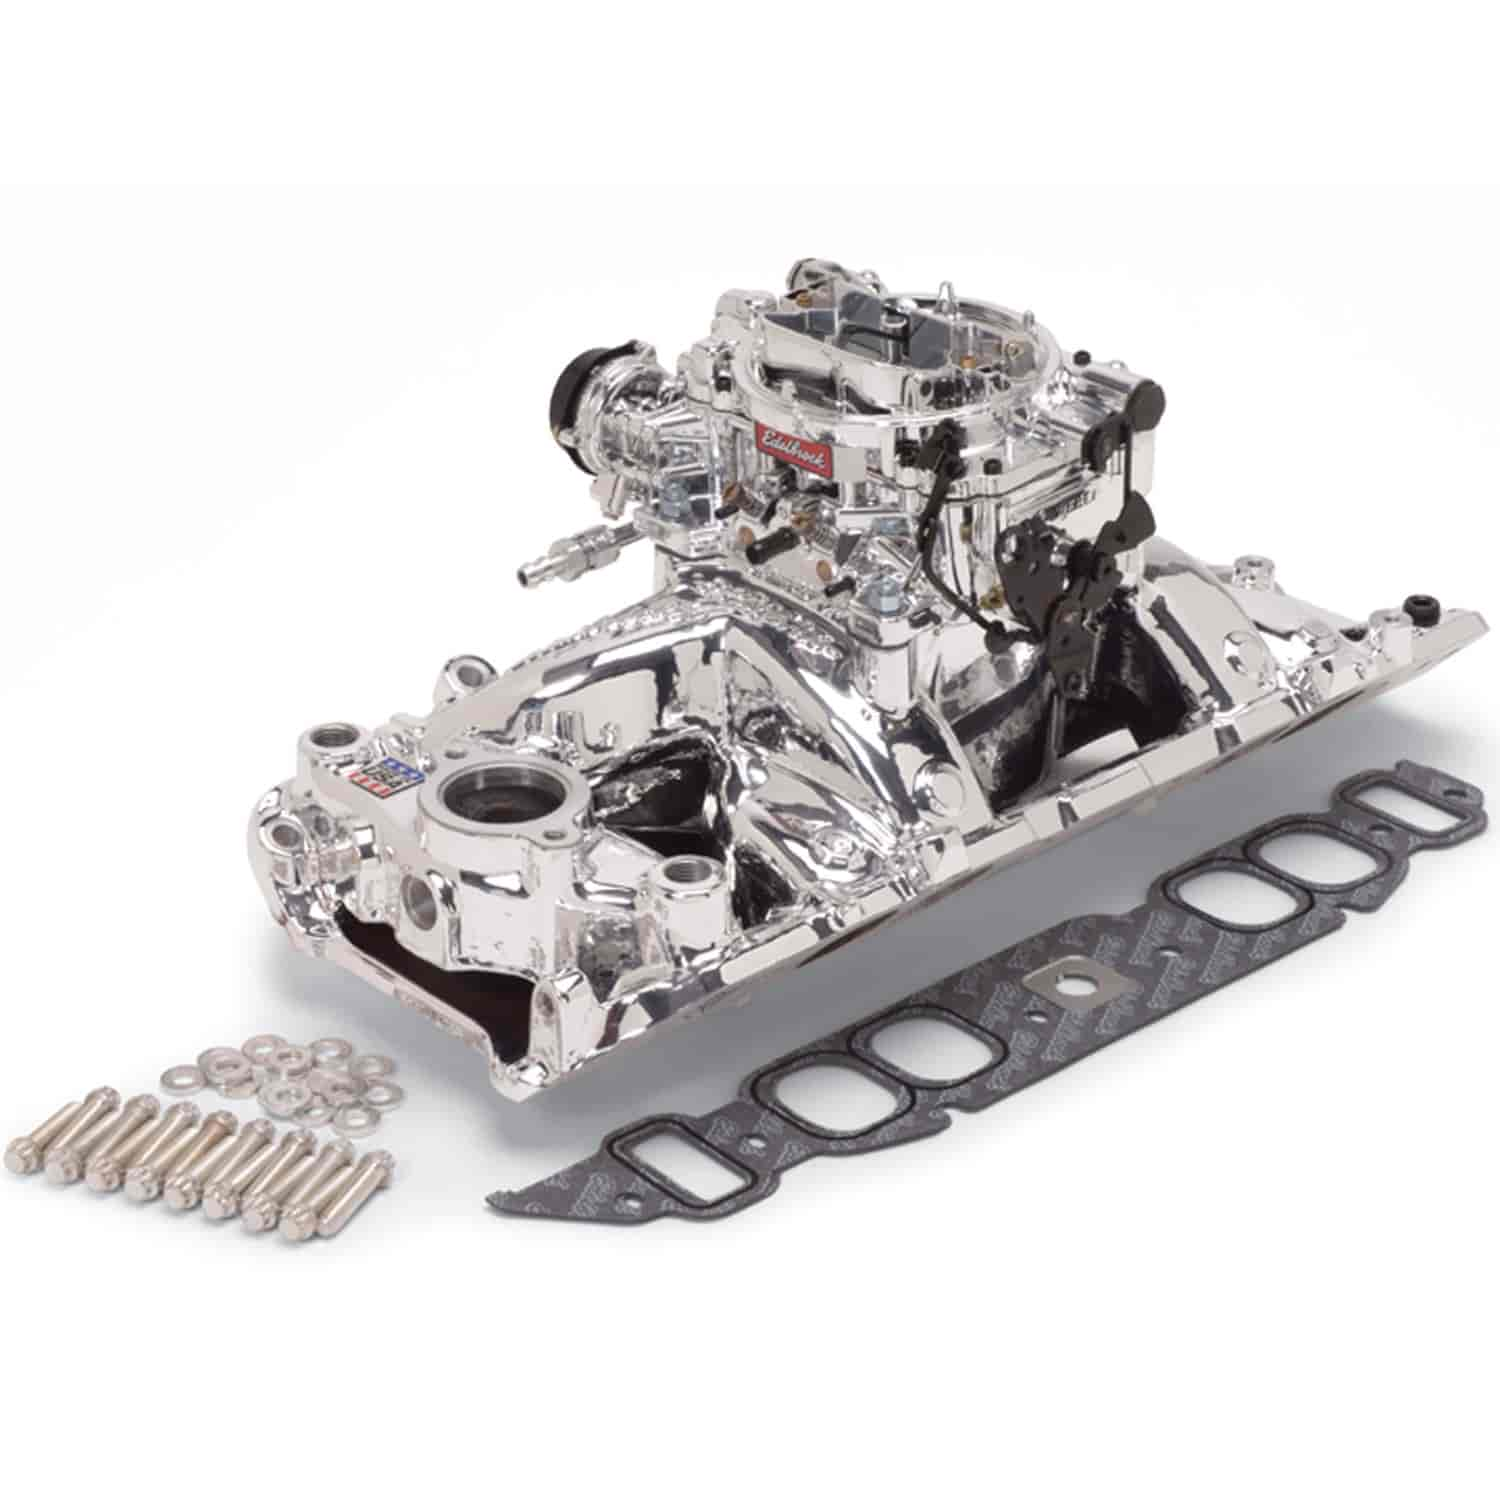 Edelbrock 20634 - Edelbrock Single-Quad Intake Manifold and Carb Kits